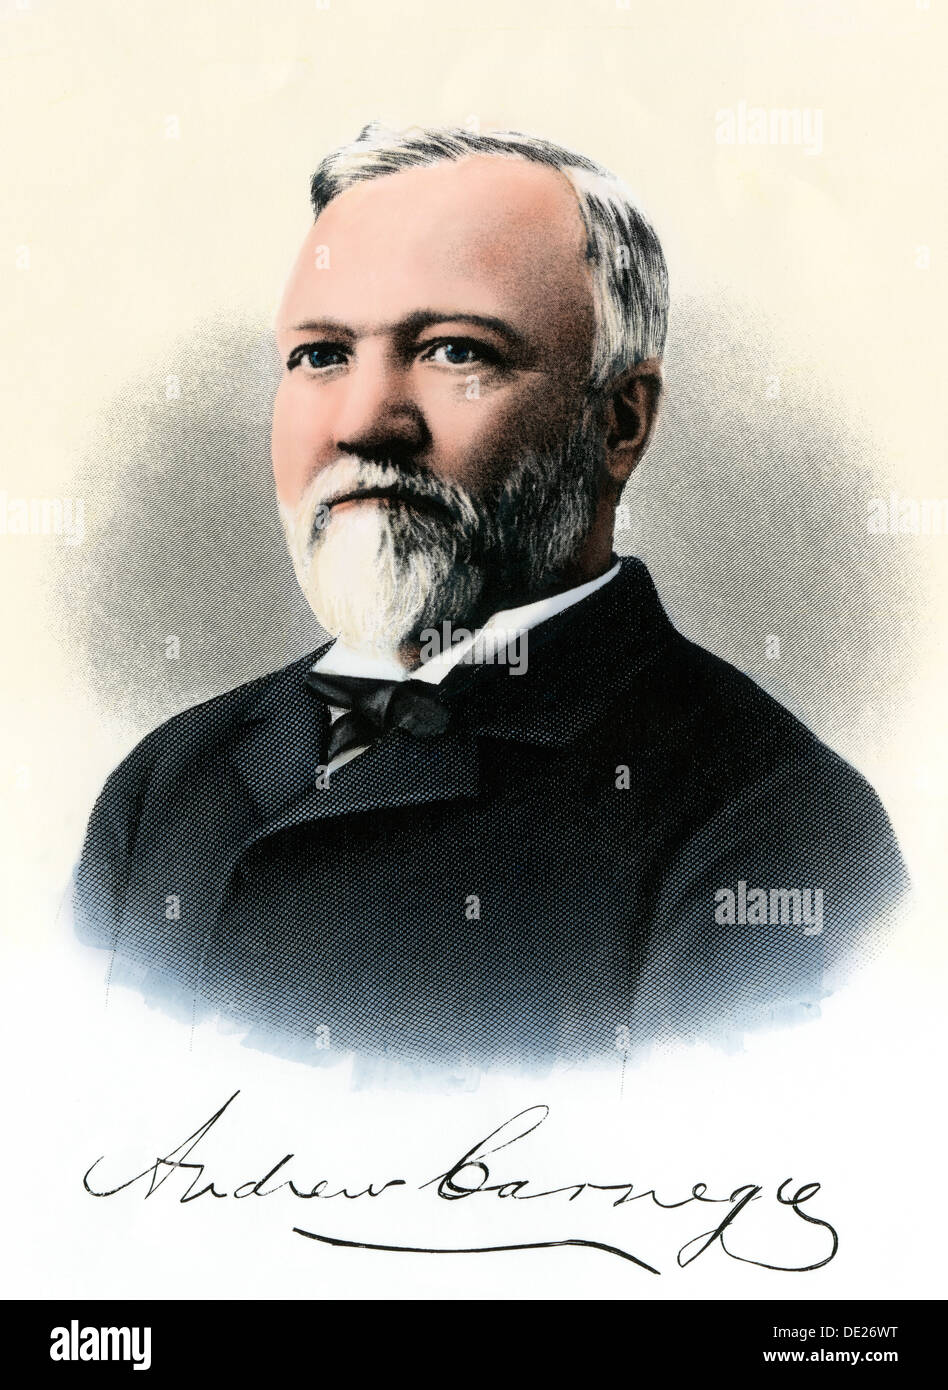 Andrew Carnegie portrat with autograph. Hand-colored steel engraving - Stock Image